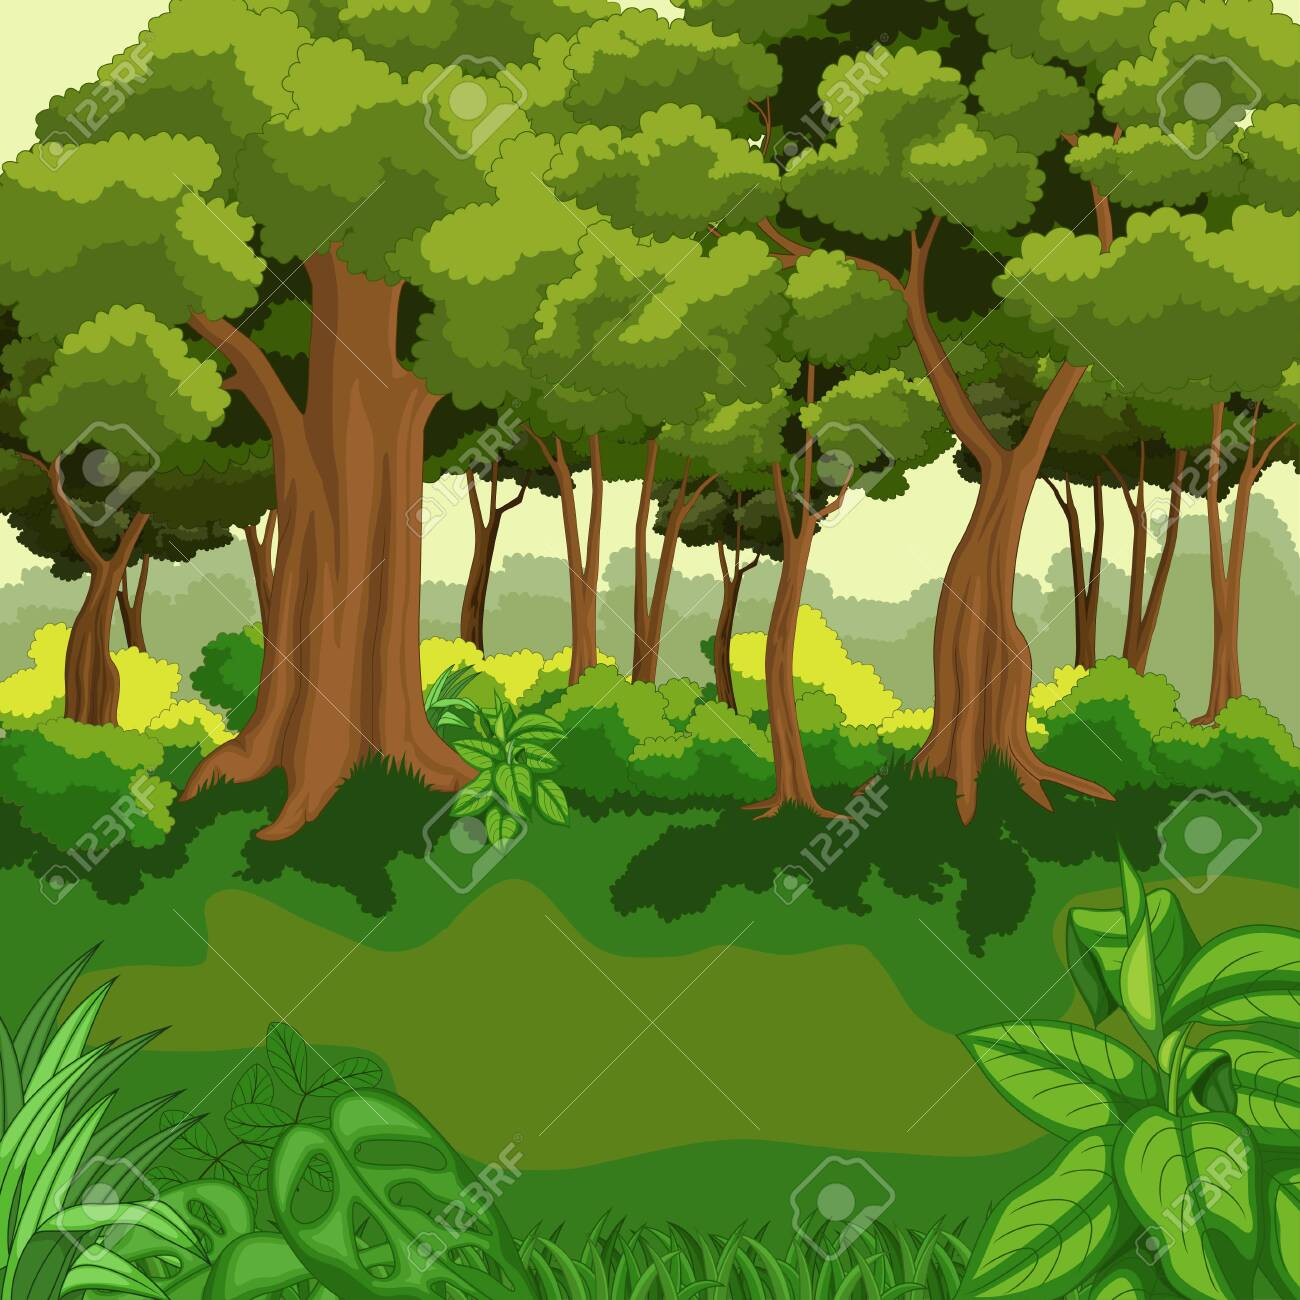 Beautiful green jungle with plants - 156750807